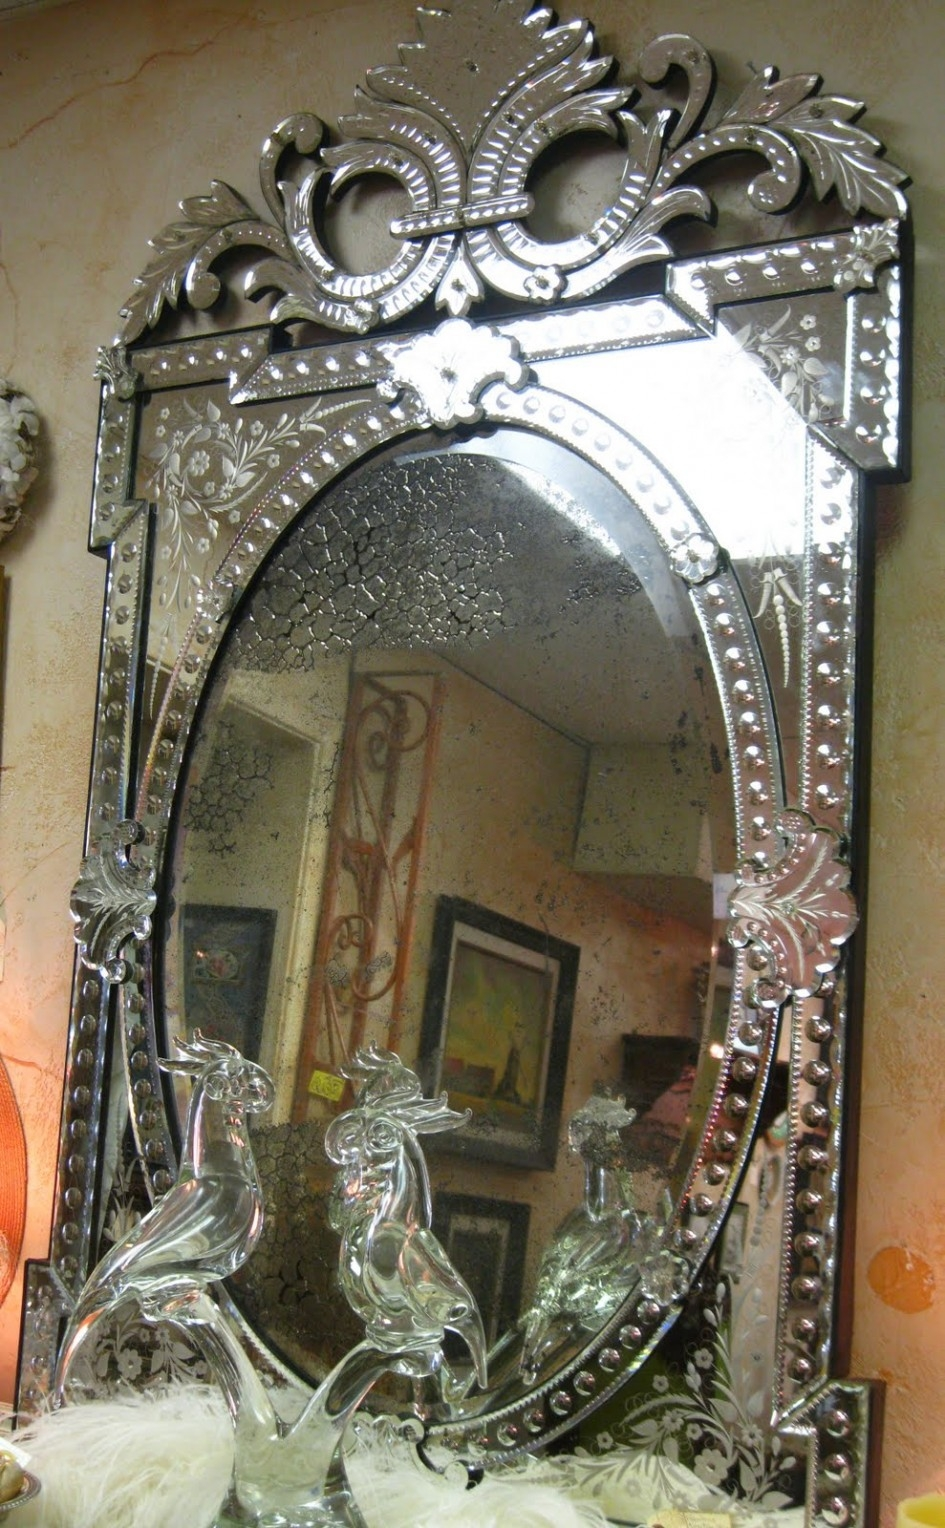 Antique Venetian Glass Mirror Pertaining To Antique Venetian Mirror (Image 3 of 15)